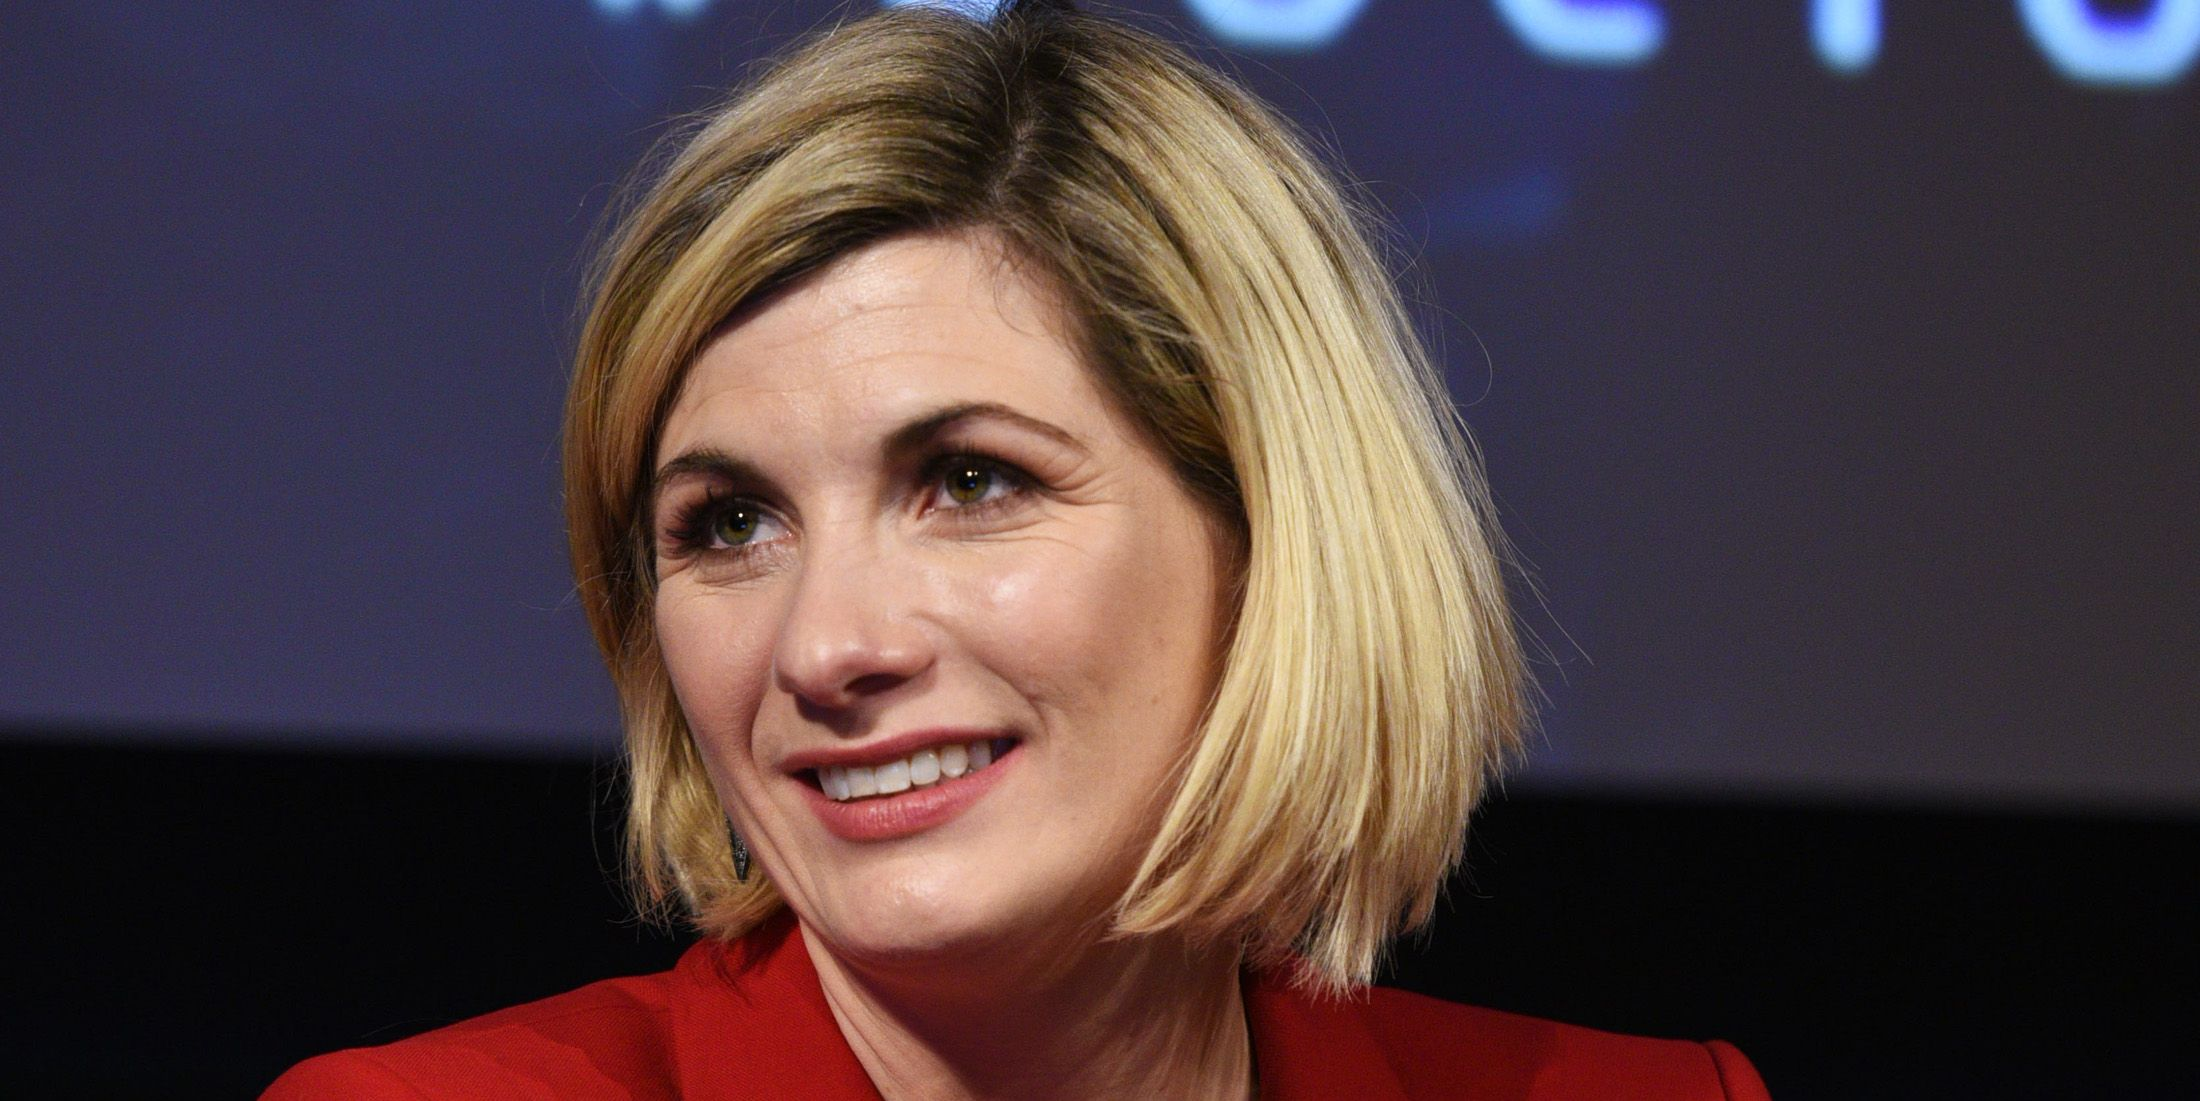 Jodie Whittaker speaks onstage at the DOCTOR WHO panel during New York Comic Con